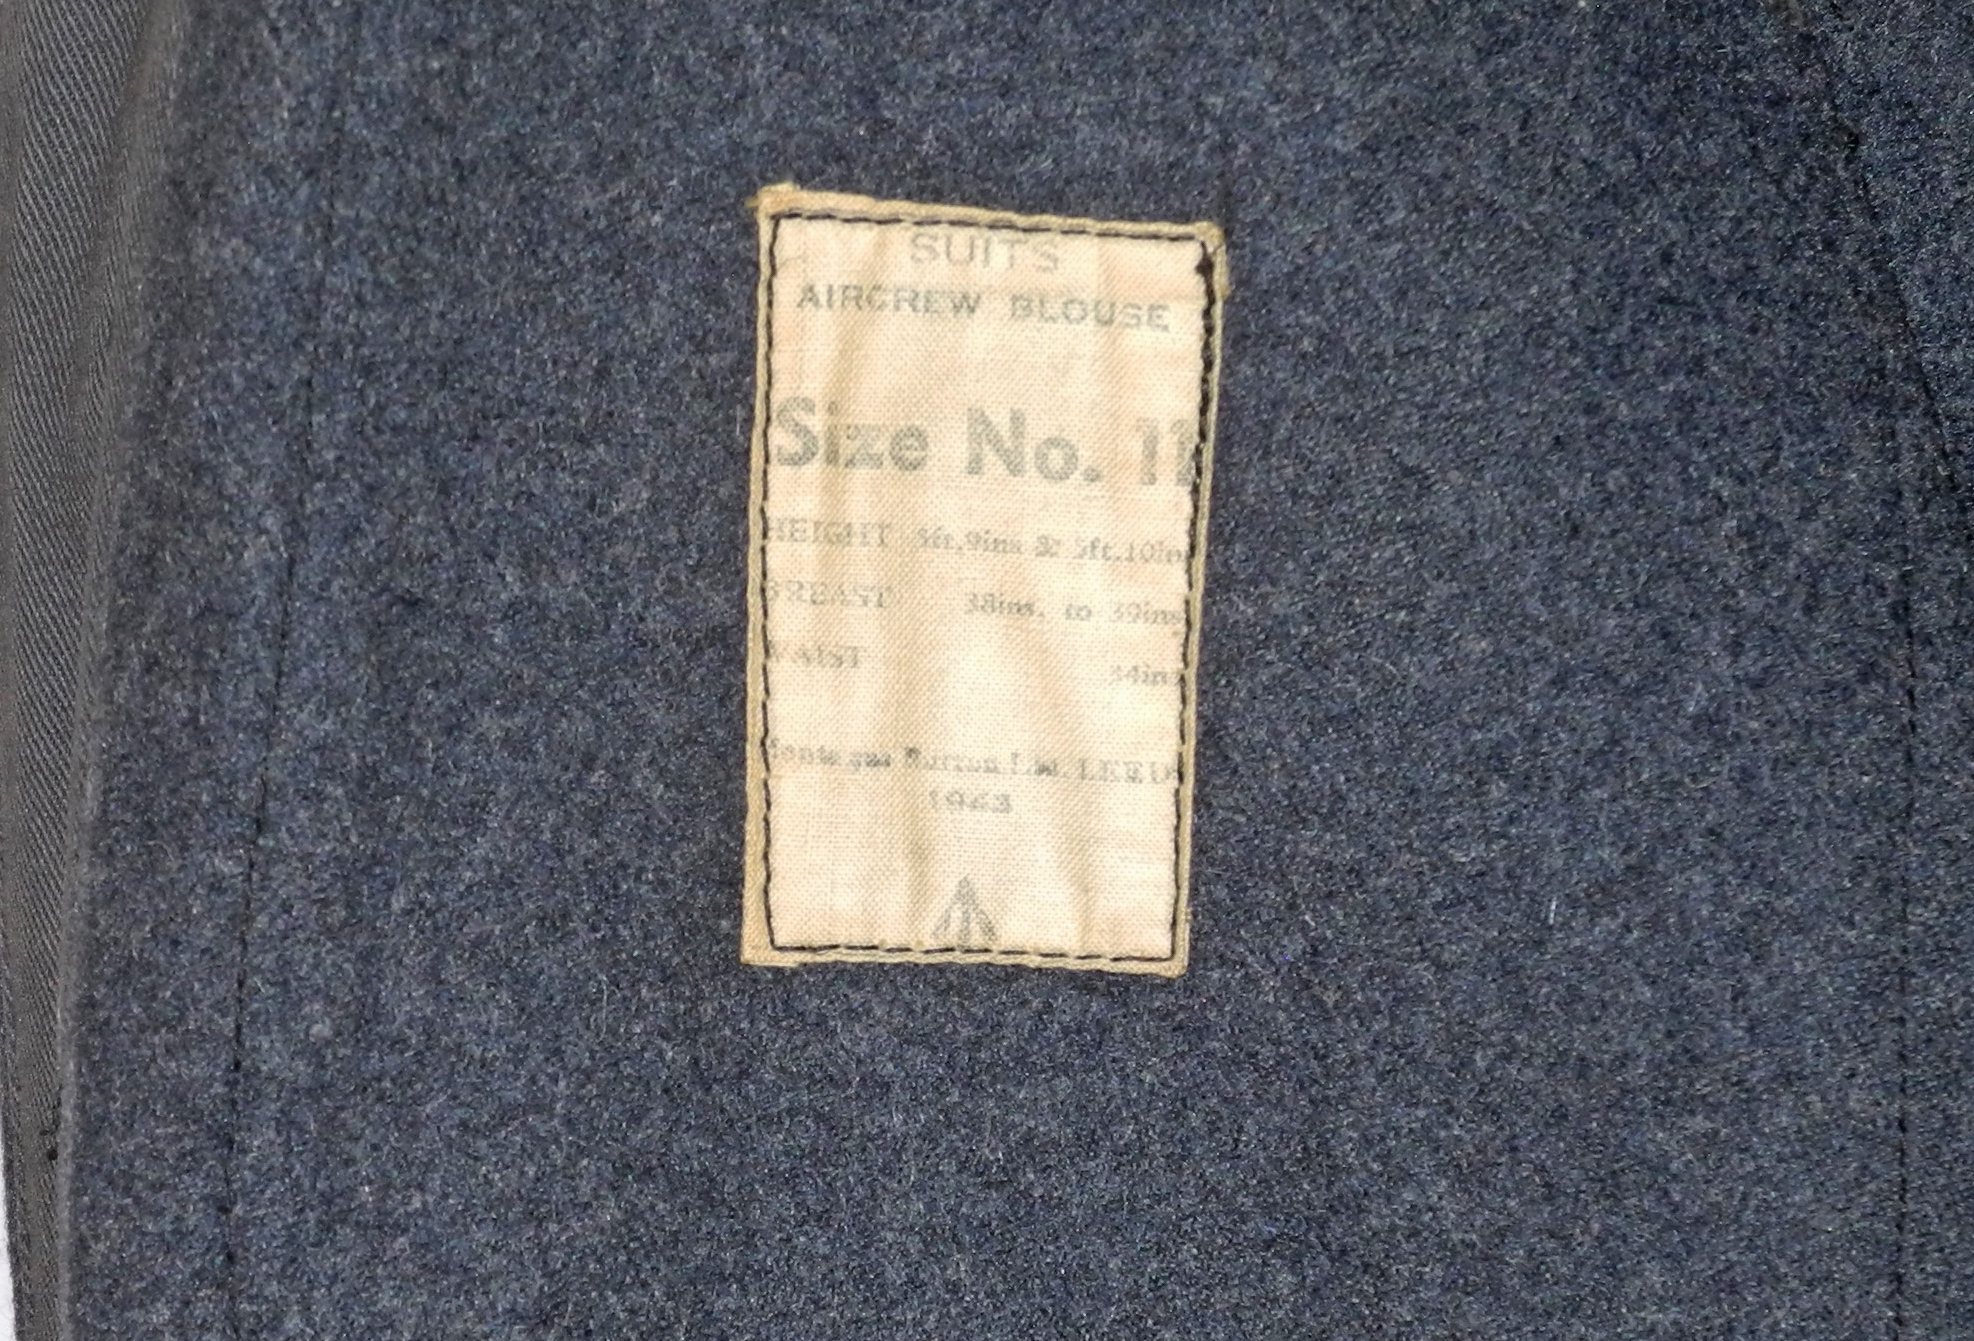 RAF Suits Aircrew blouse 1943N5979